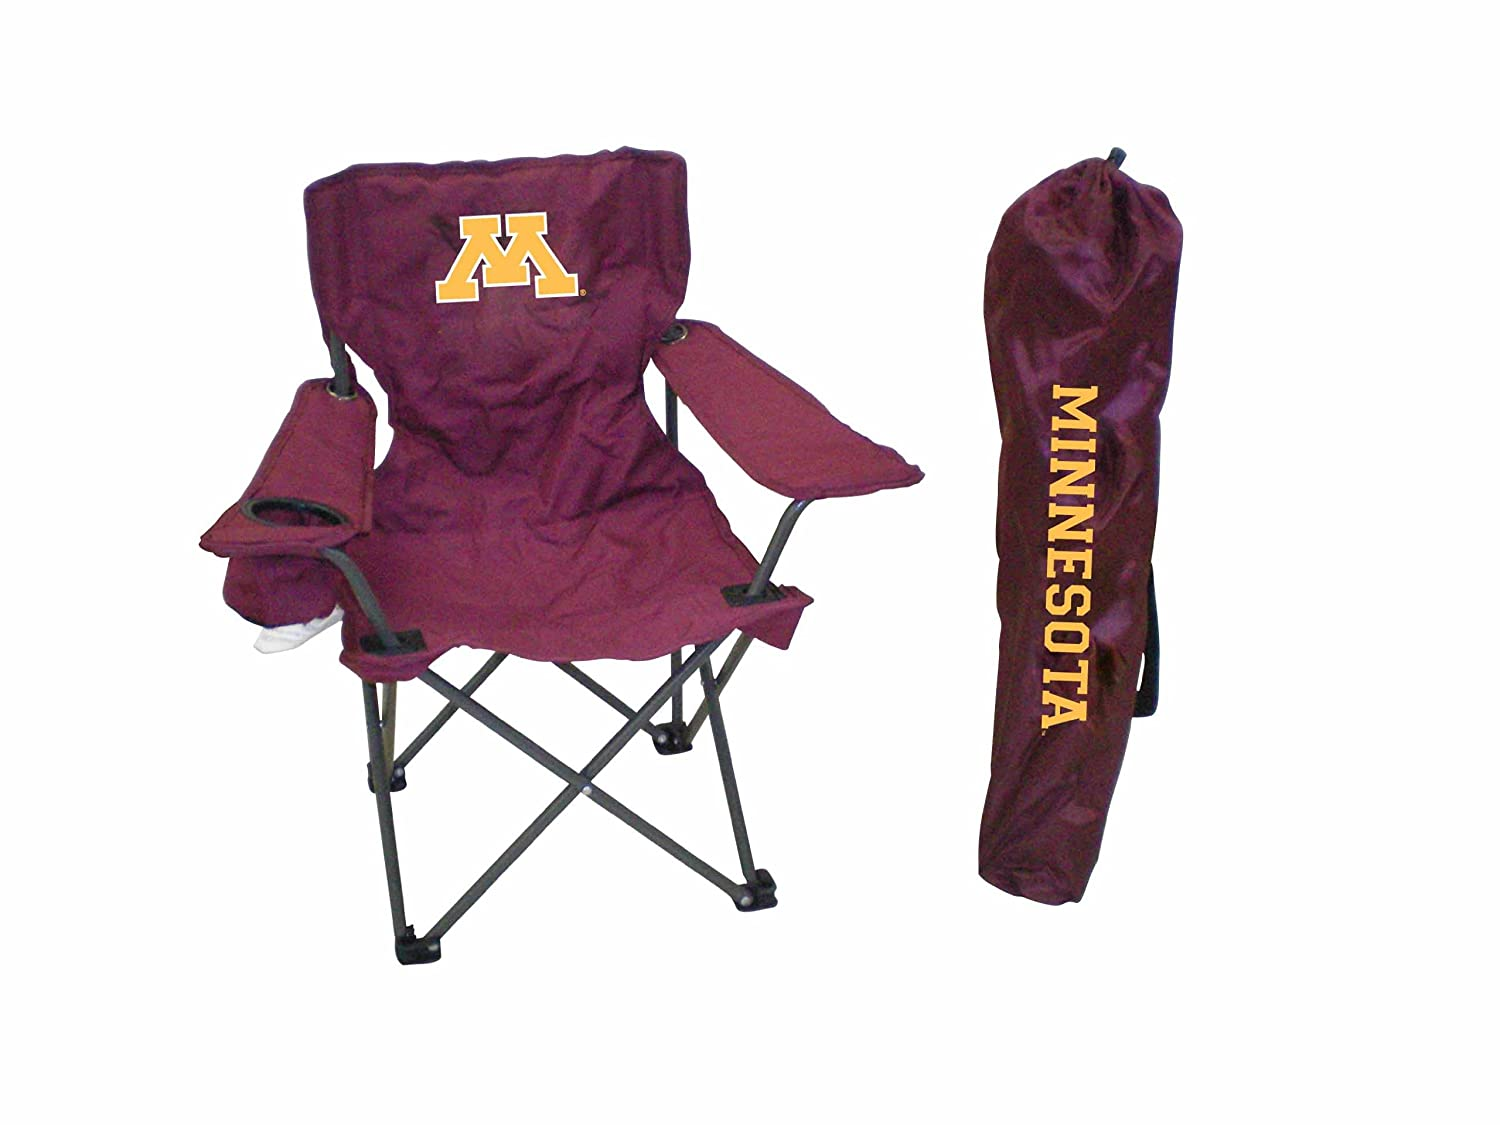 Rivalry NCAA Minnesota Golden Gophers Youth Folding Chair with Carrying Case